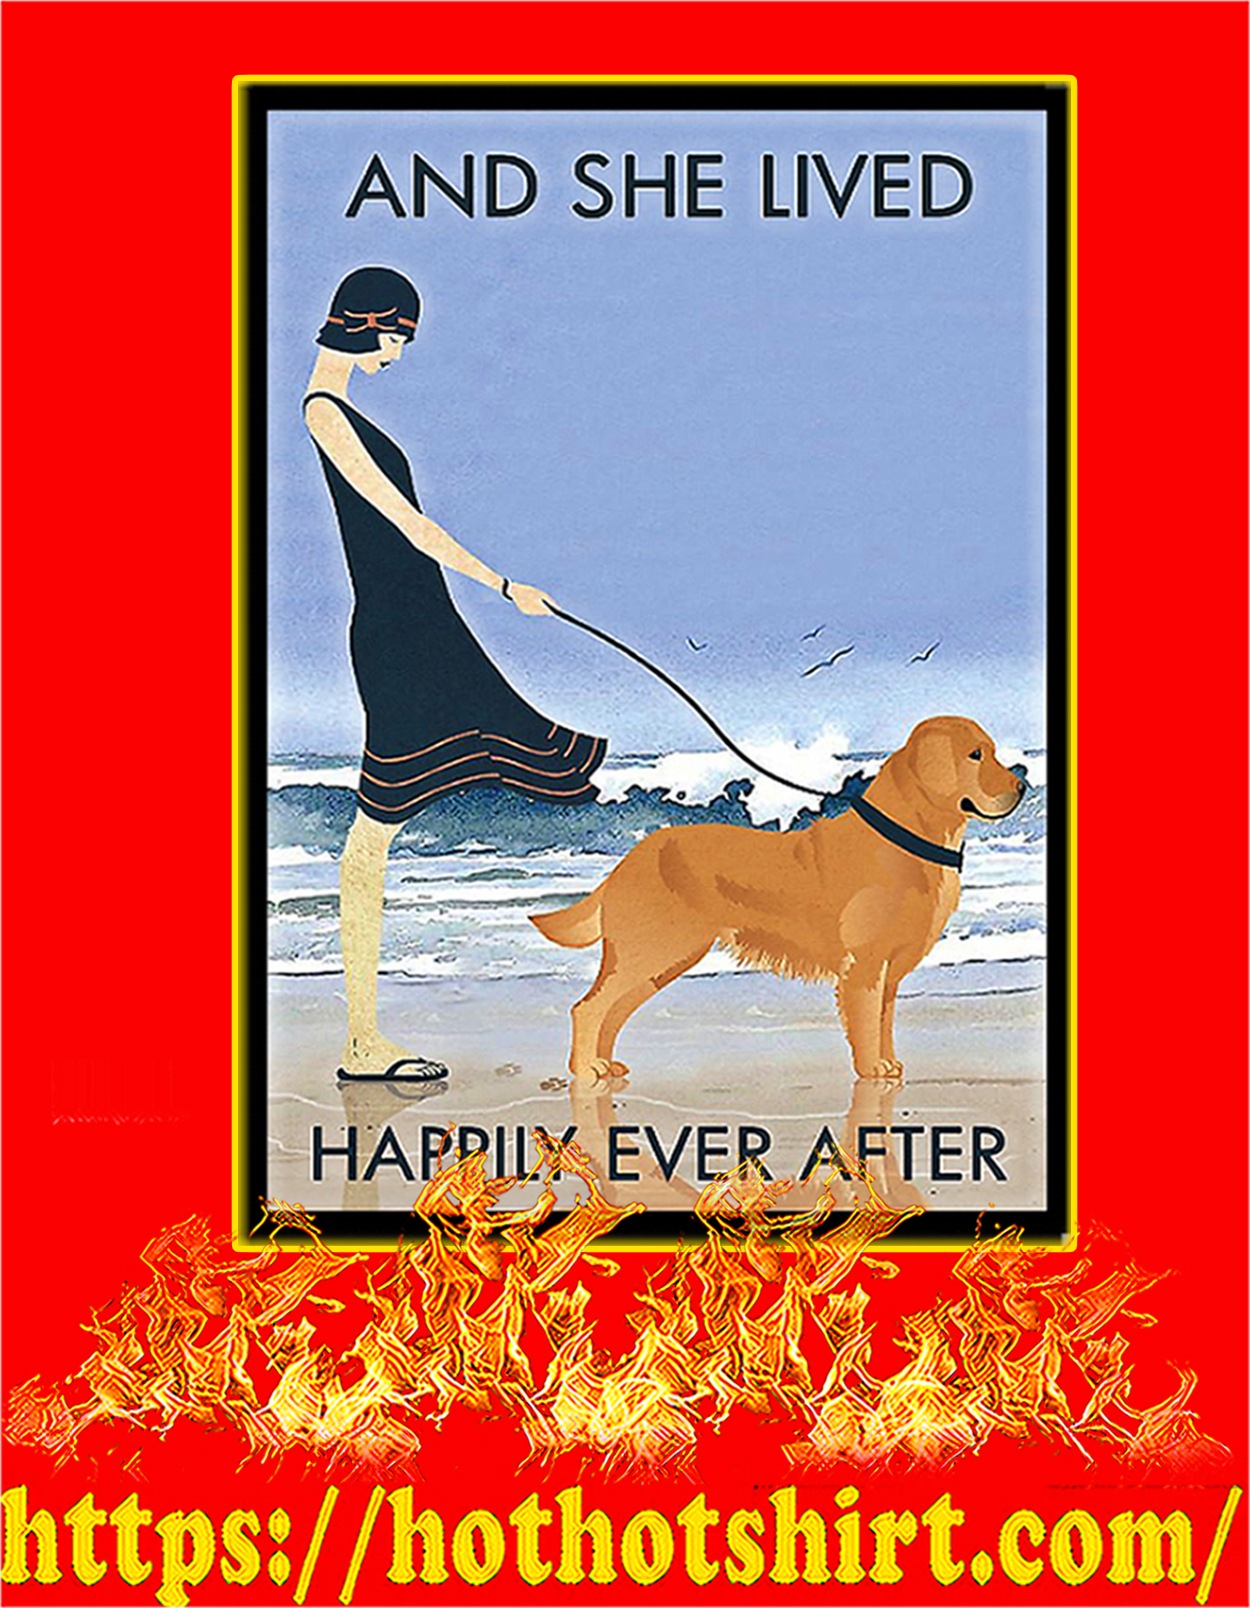 Golden Retriever And she lived happily ever after poster - A3